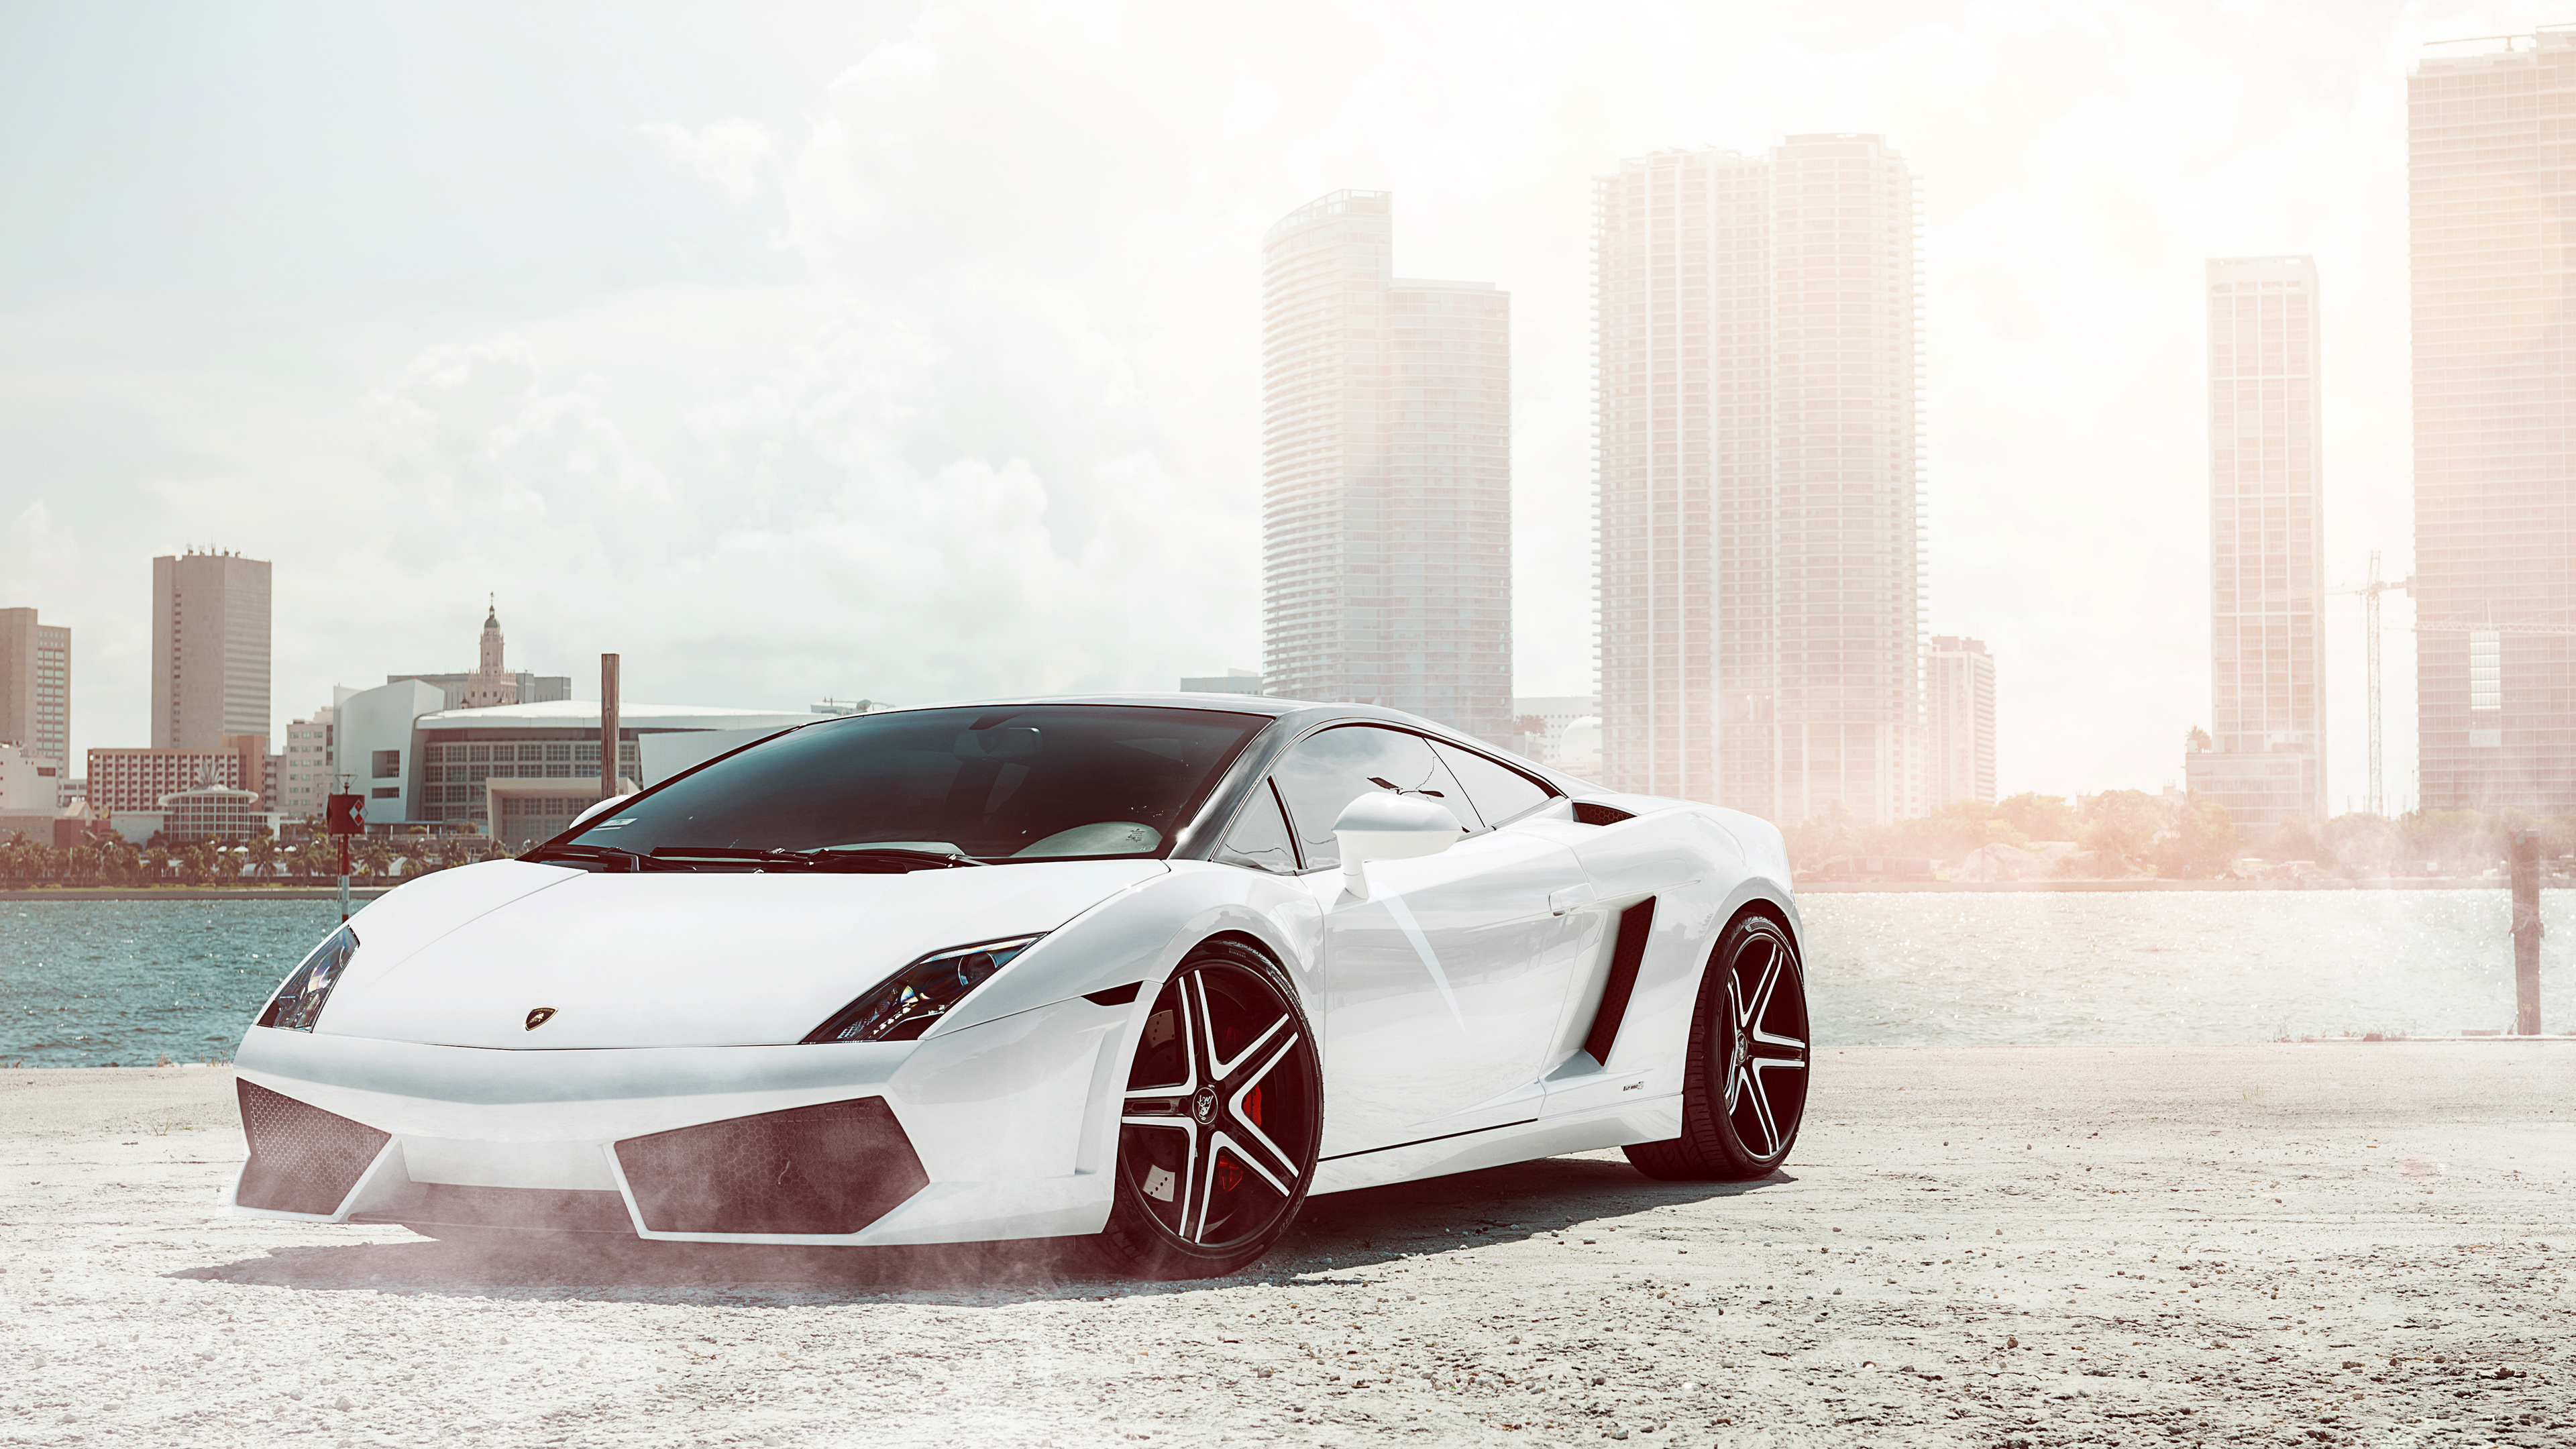 Lamborghini Gallardo White Wallpaper Hd Car Wallpapers Id 5517